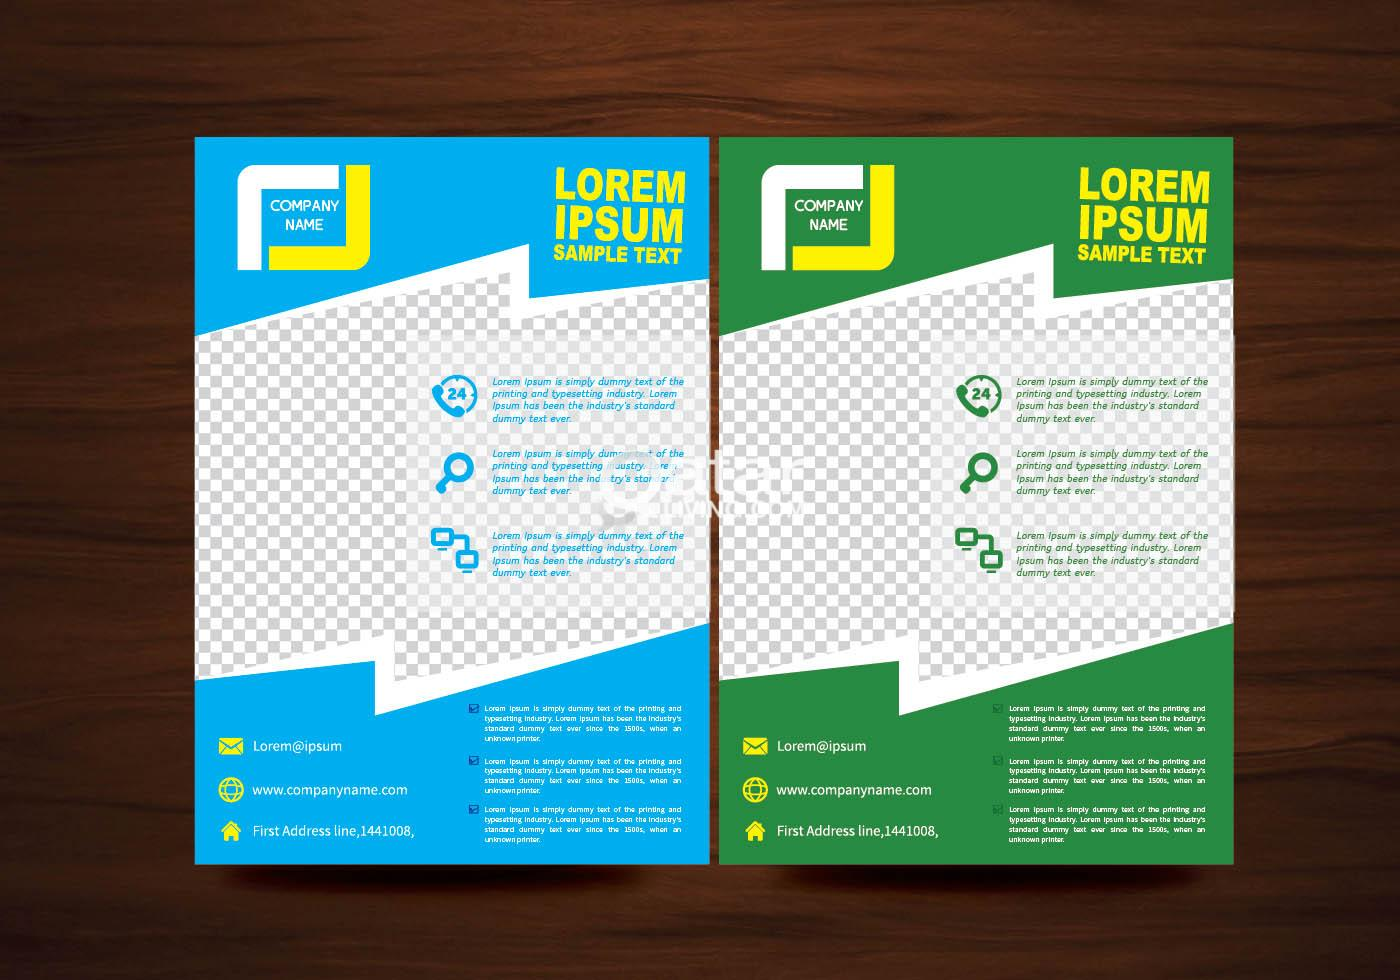 Freelance logo designerbrochurebusiness carddesignsflyerproduct title title colourmoves